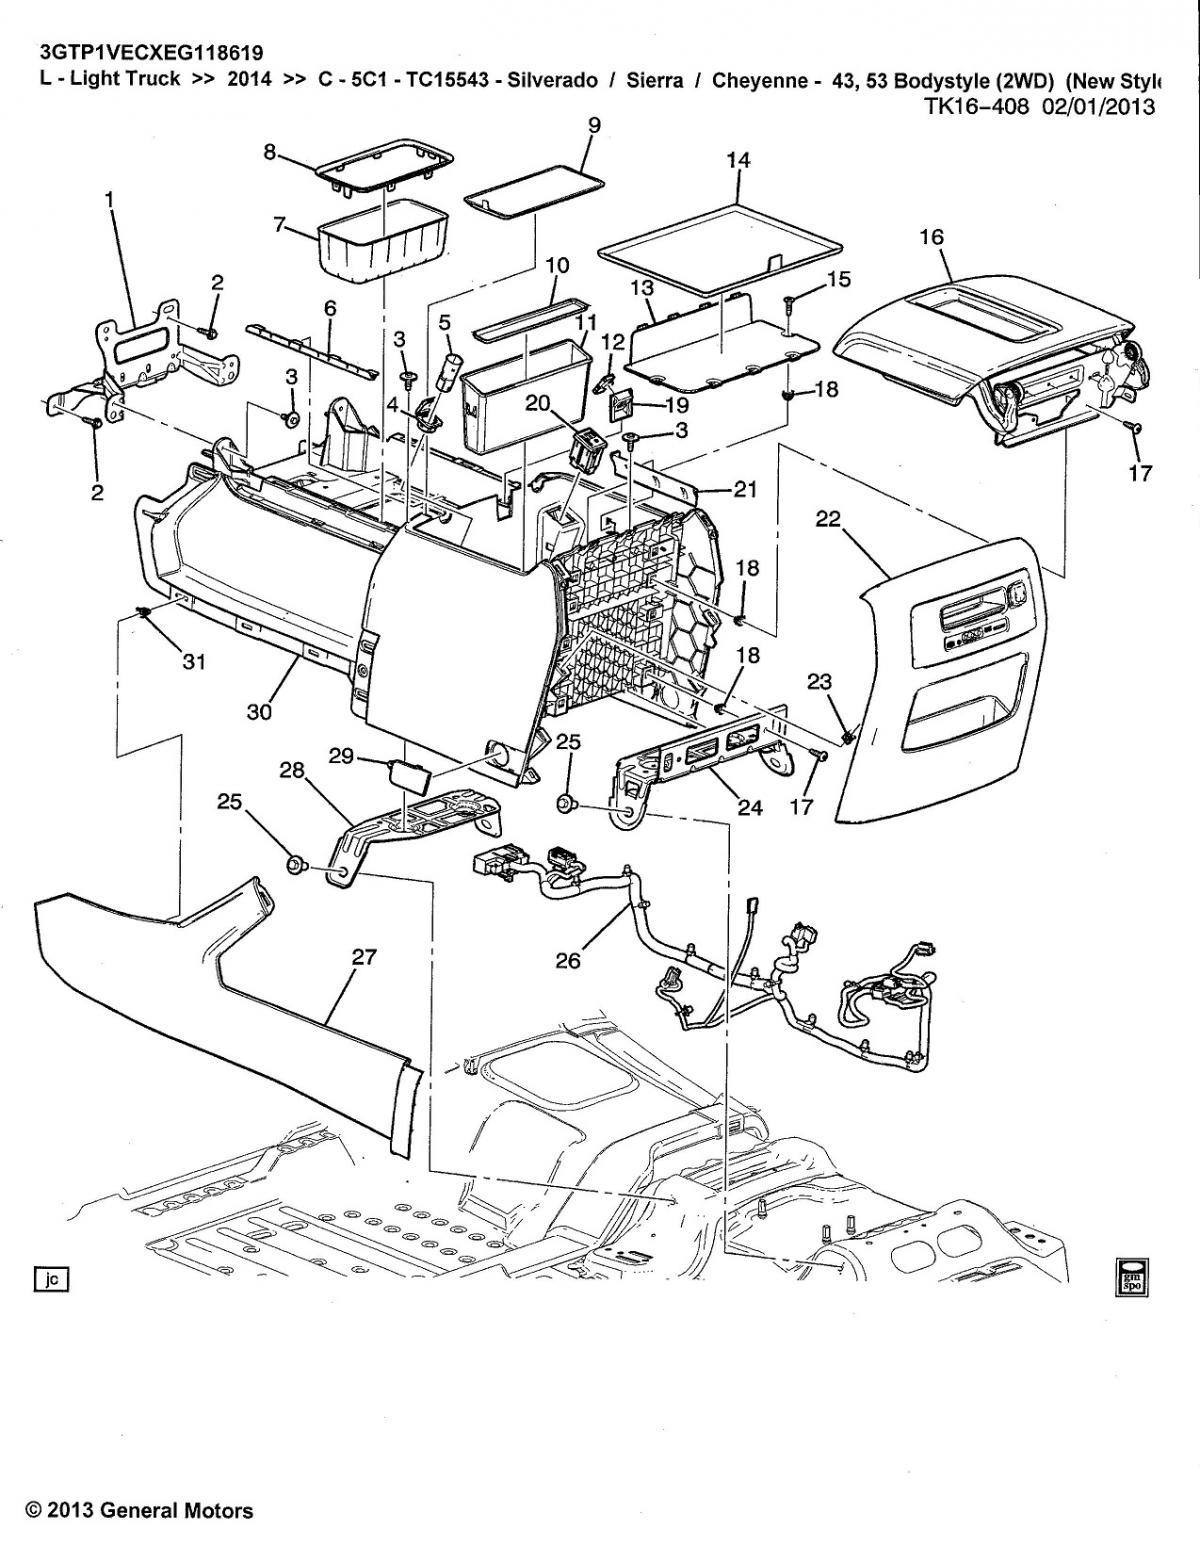 Rear Seat For 2004 Gmc Sierra Parts Diagram, Rear, Free